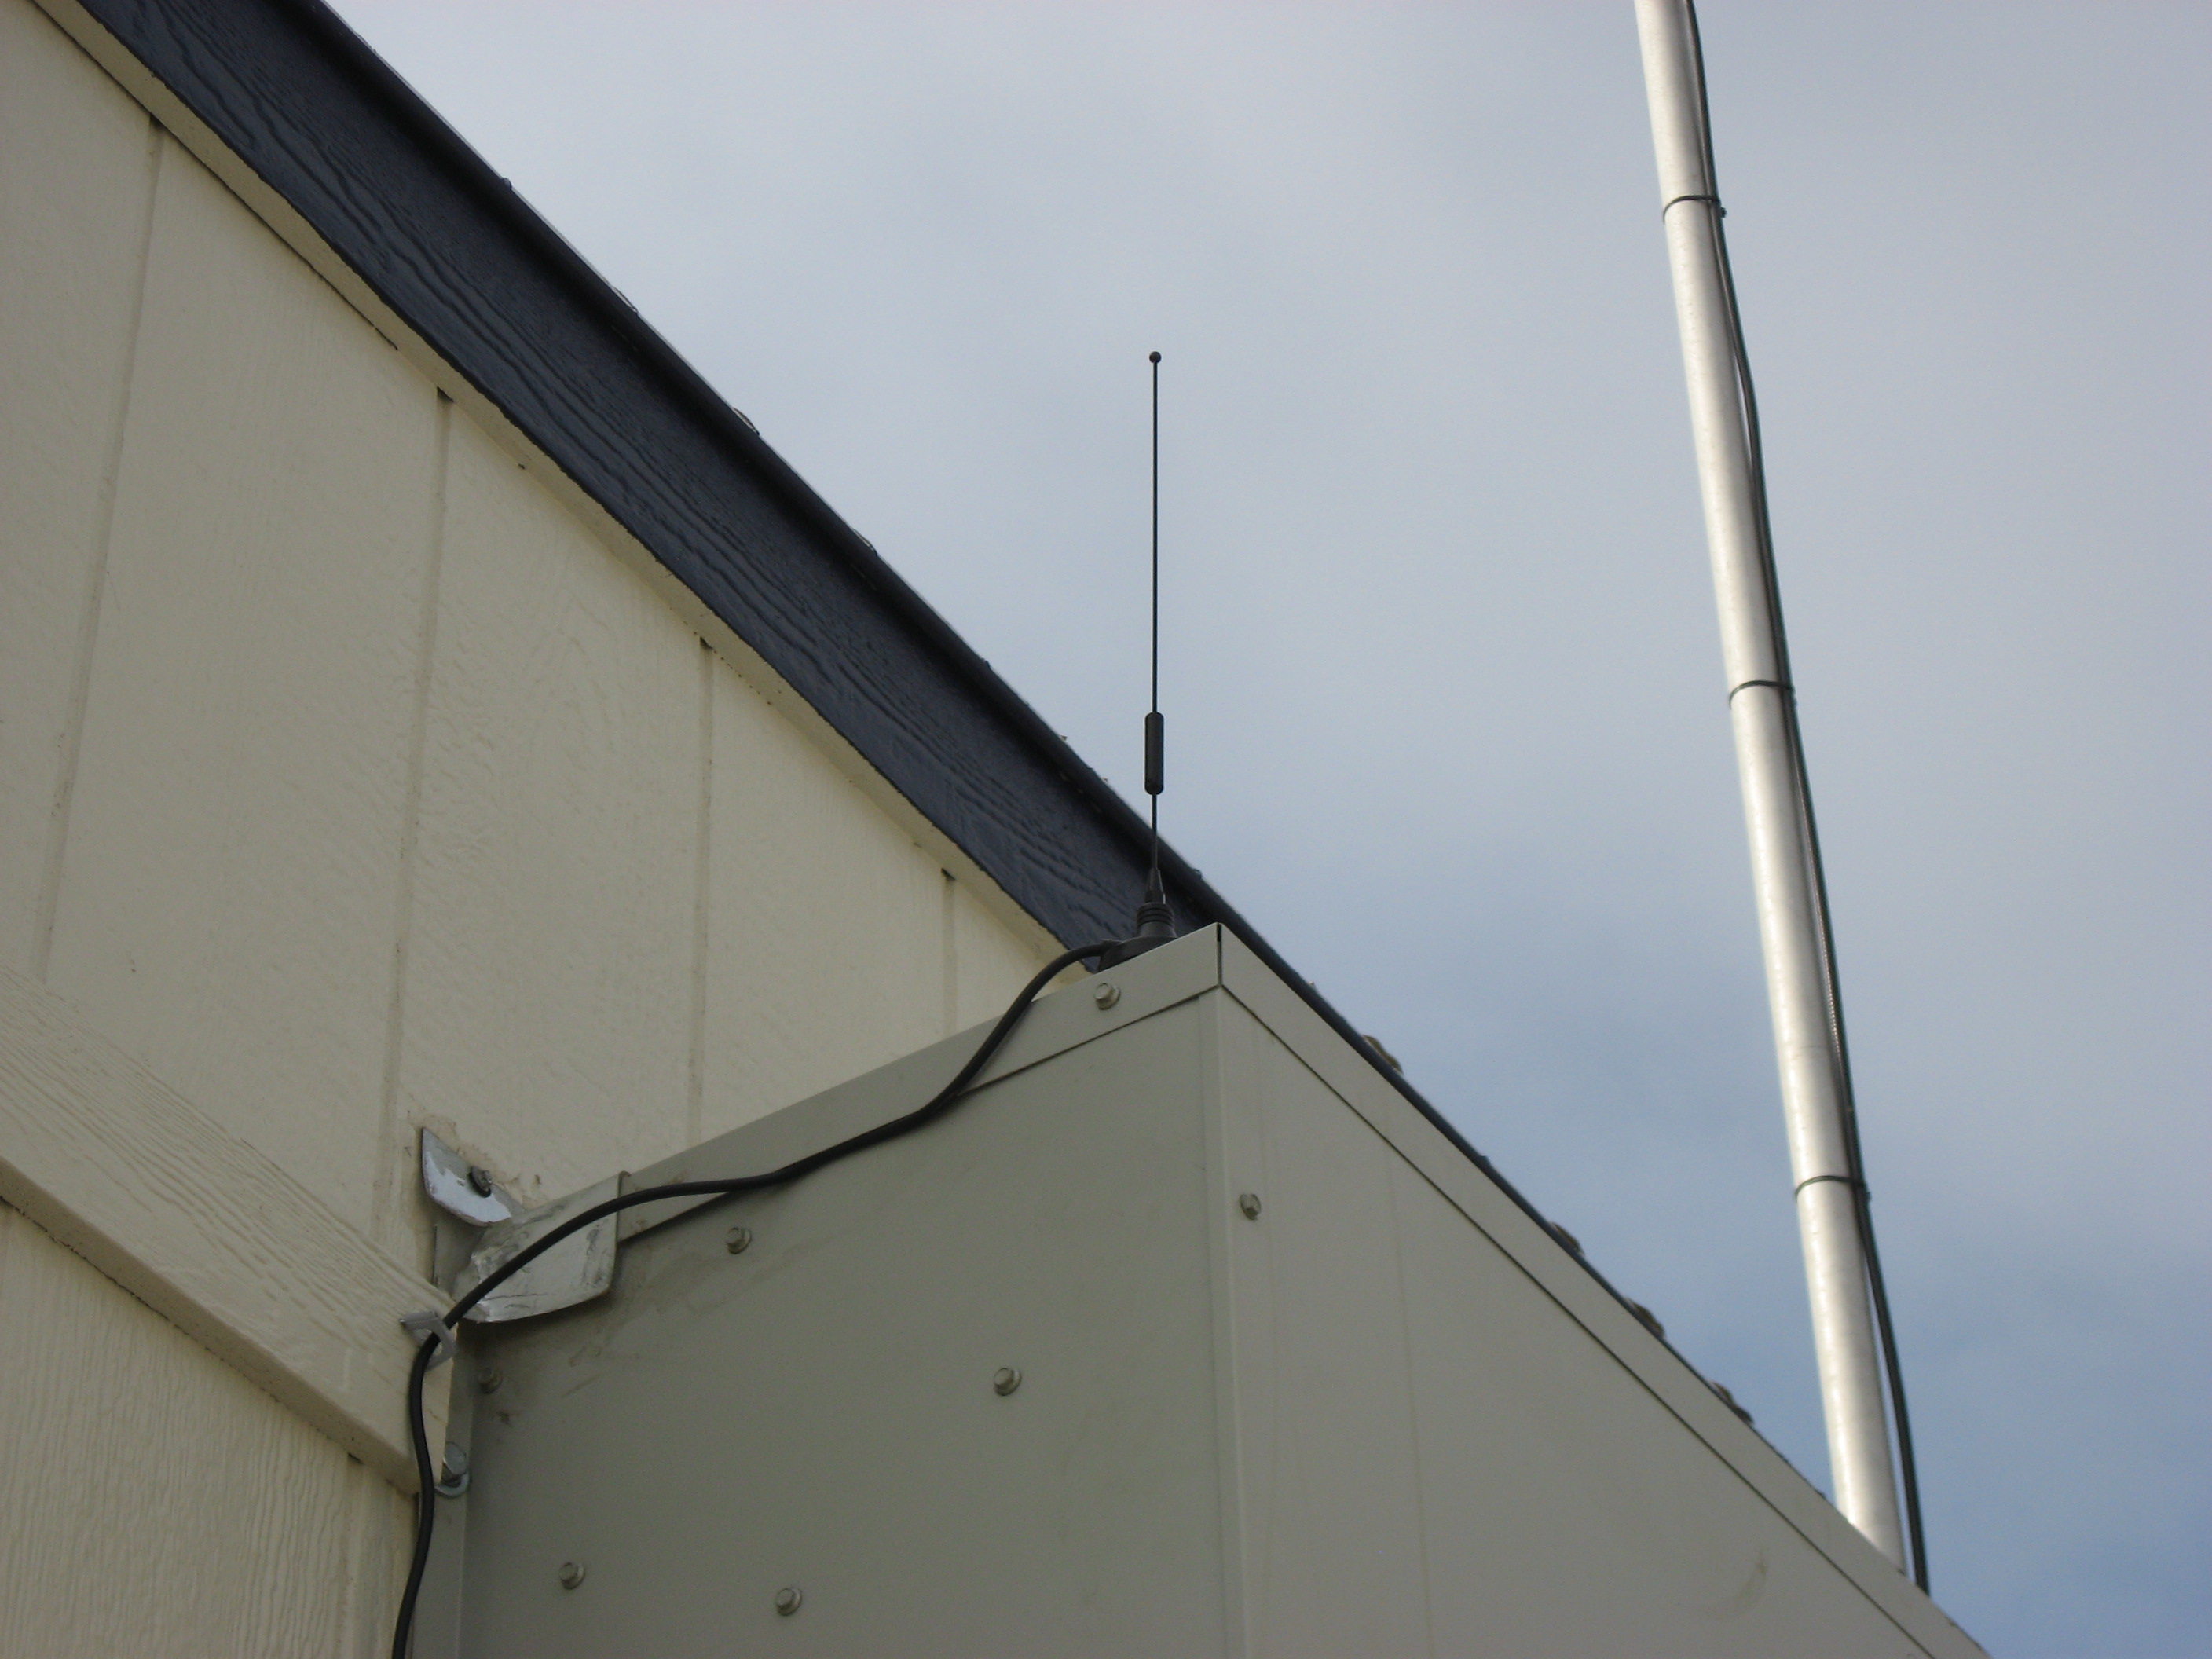 Shore station antenna